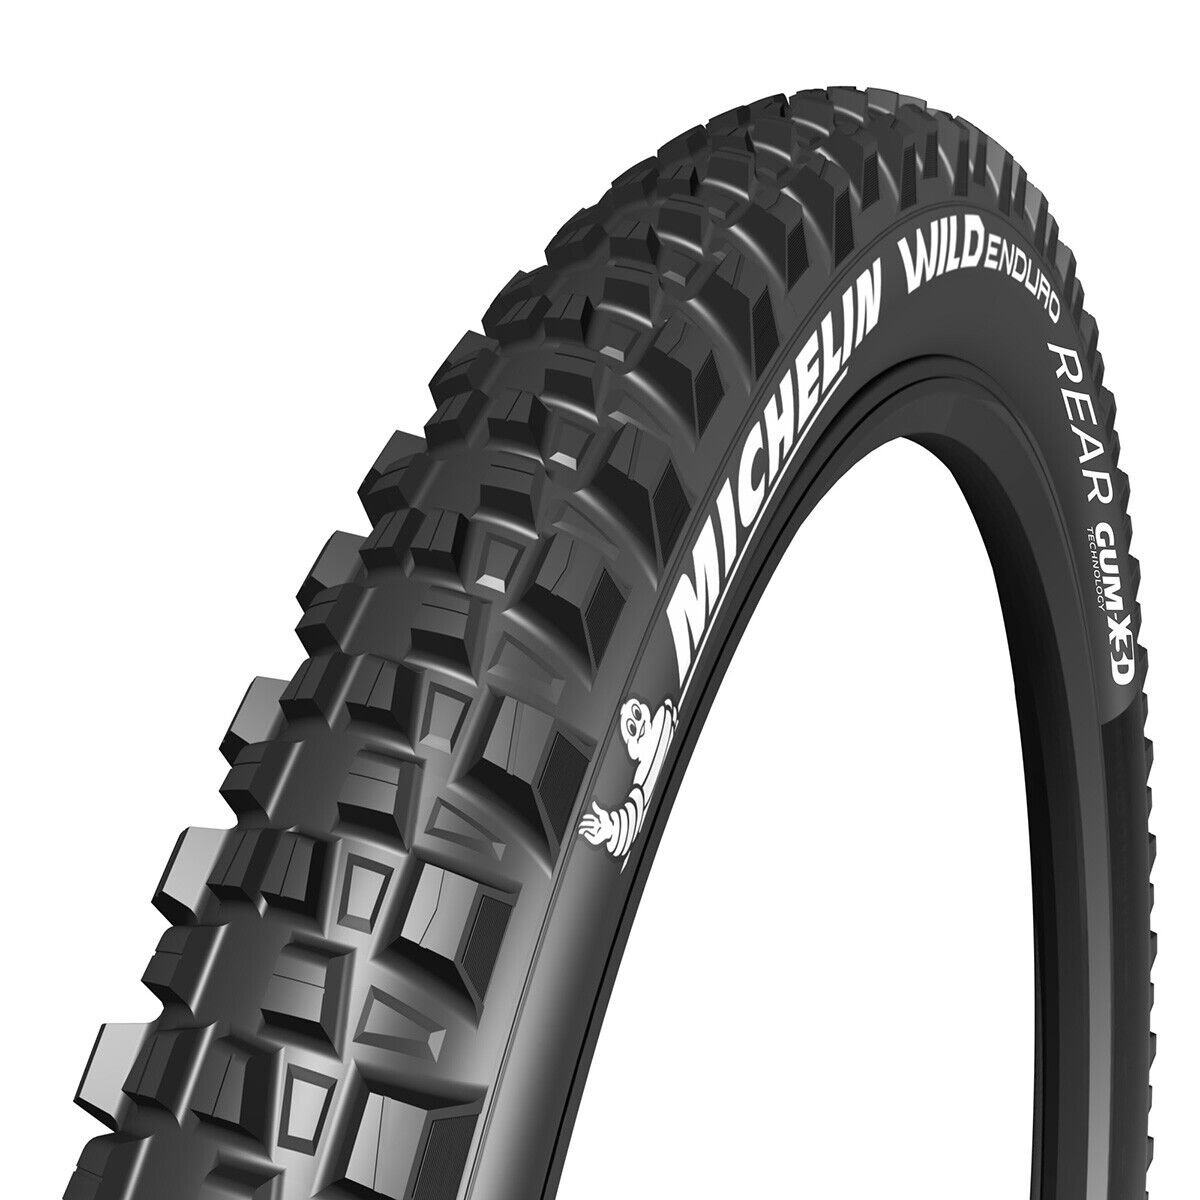 Michelin Wild Enduro  - REAR - GumX - TLR Tyre Folding  latest styles